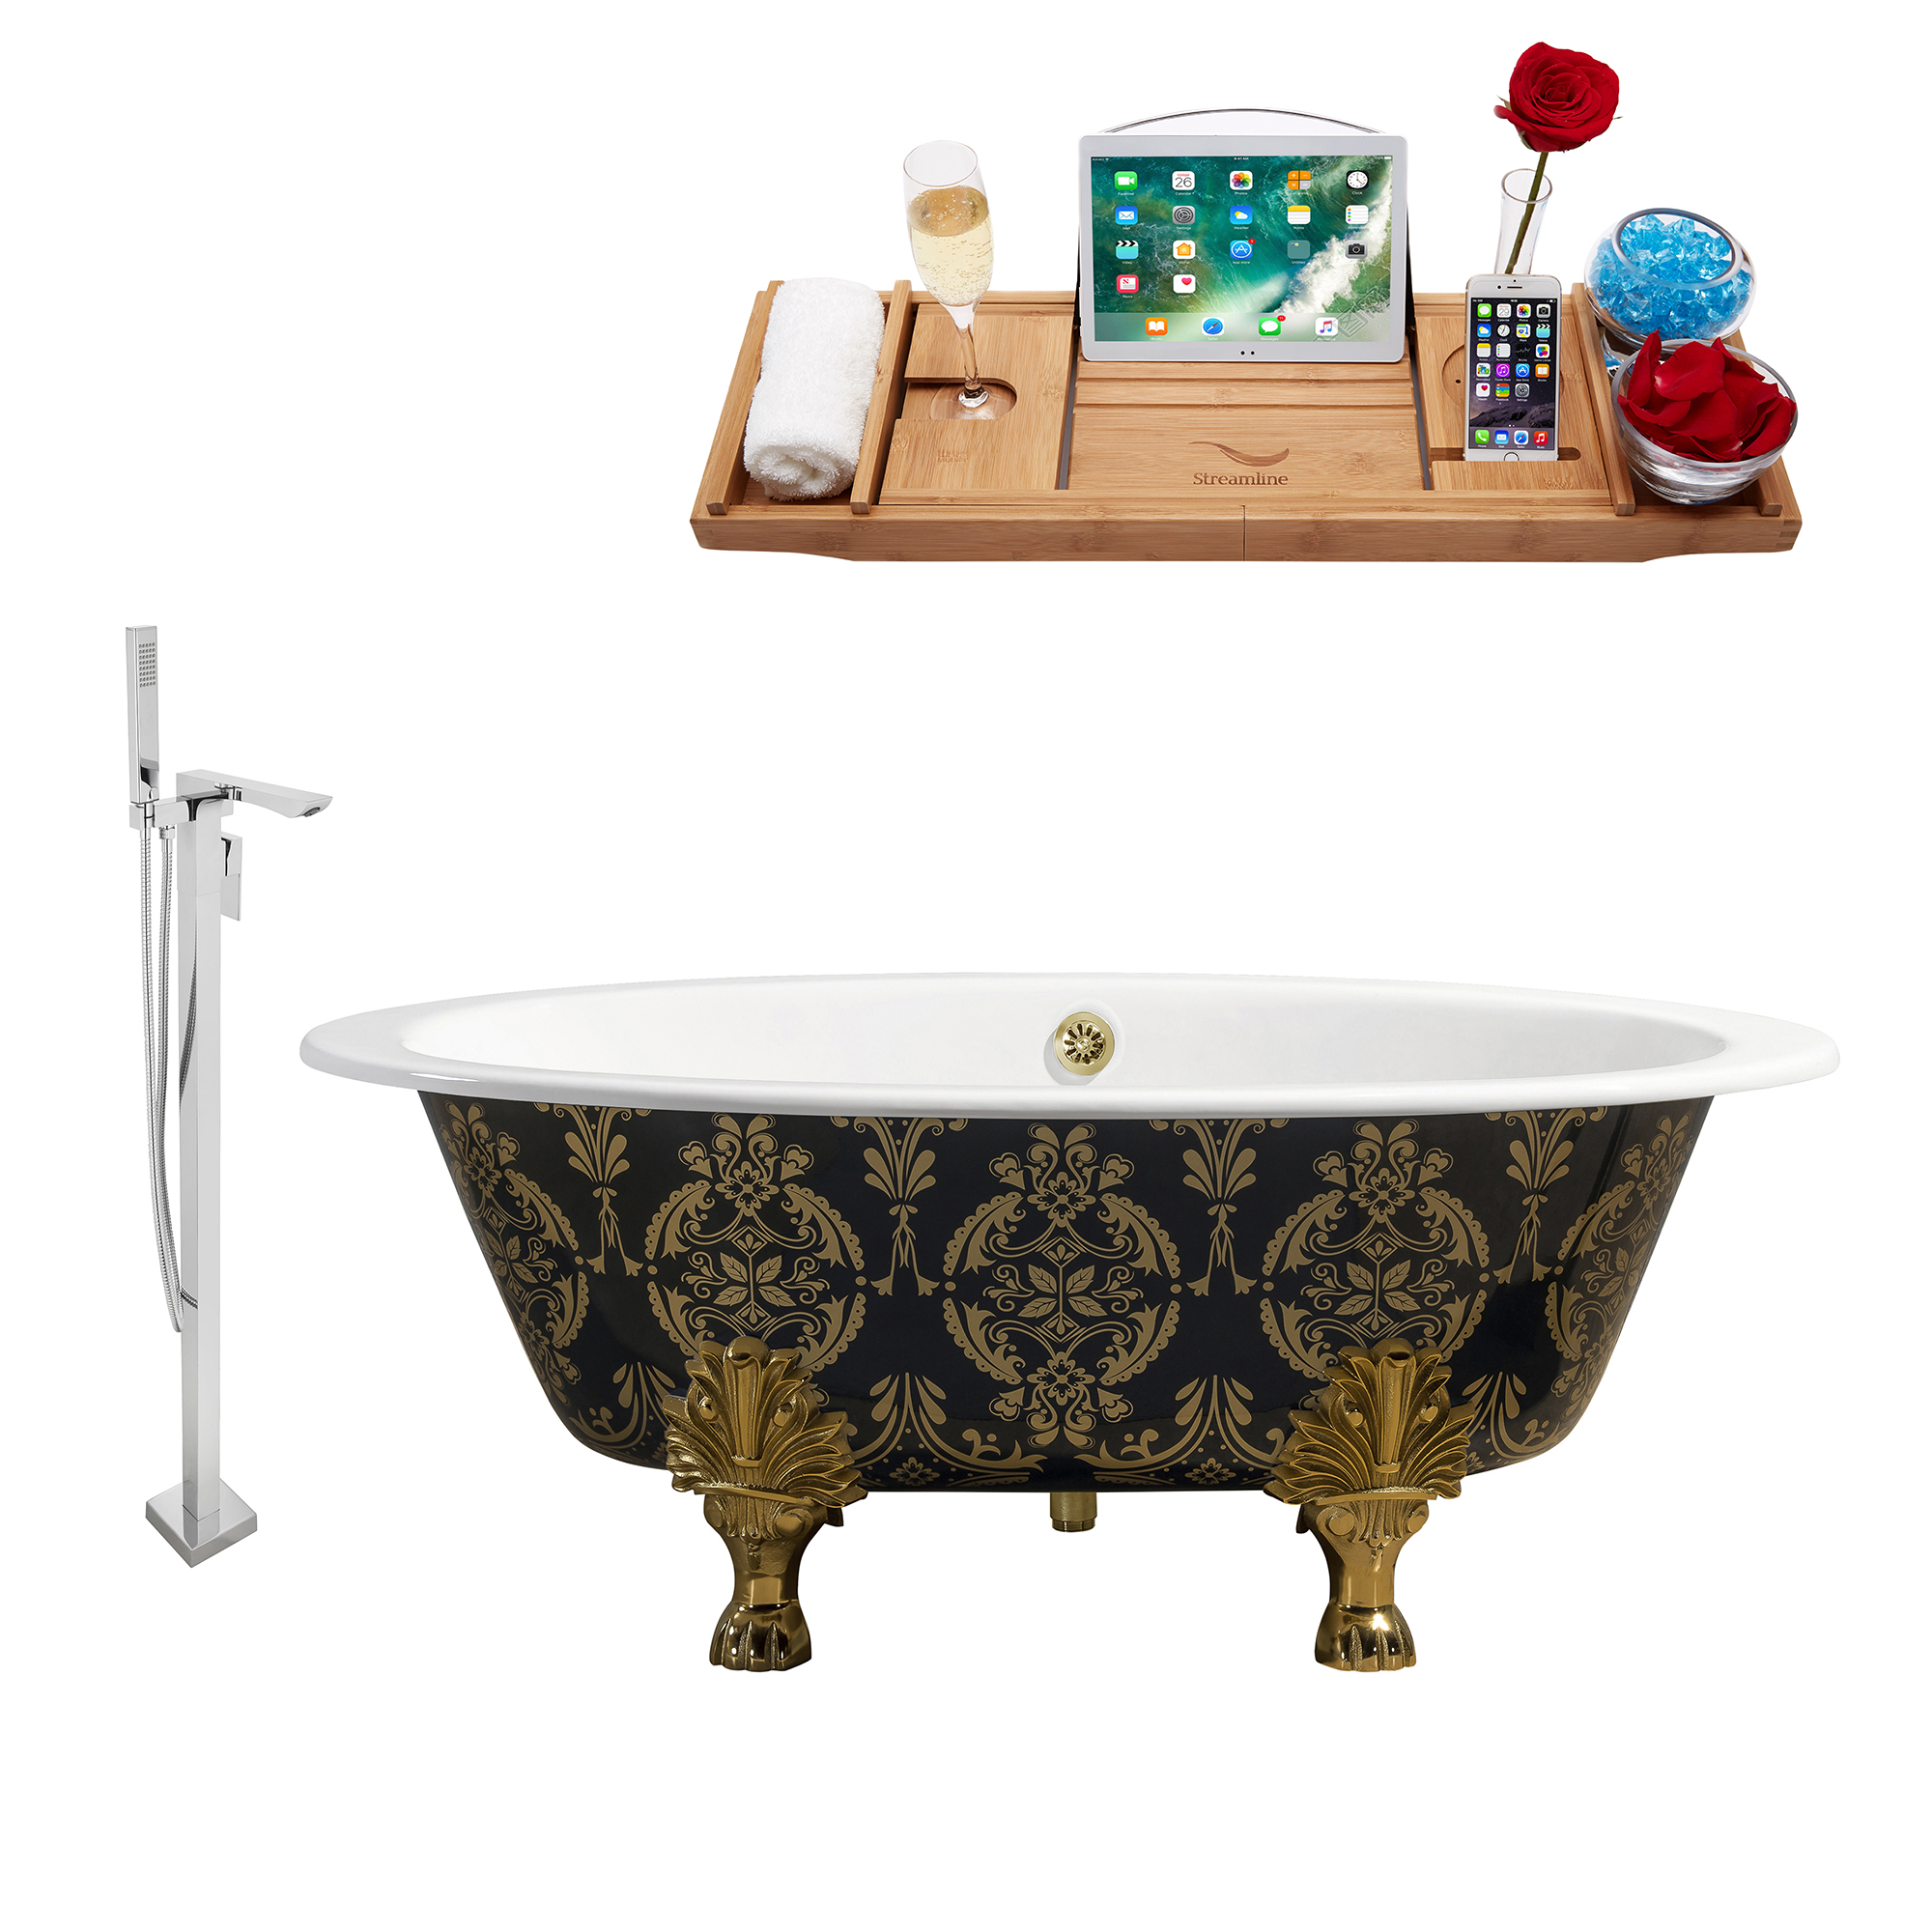 "Cast Iron Tub, Faucet and Tray Set 65"" RH5440GLD-GLD-140"